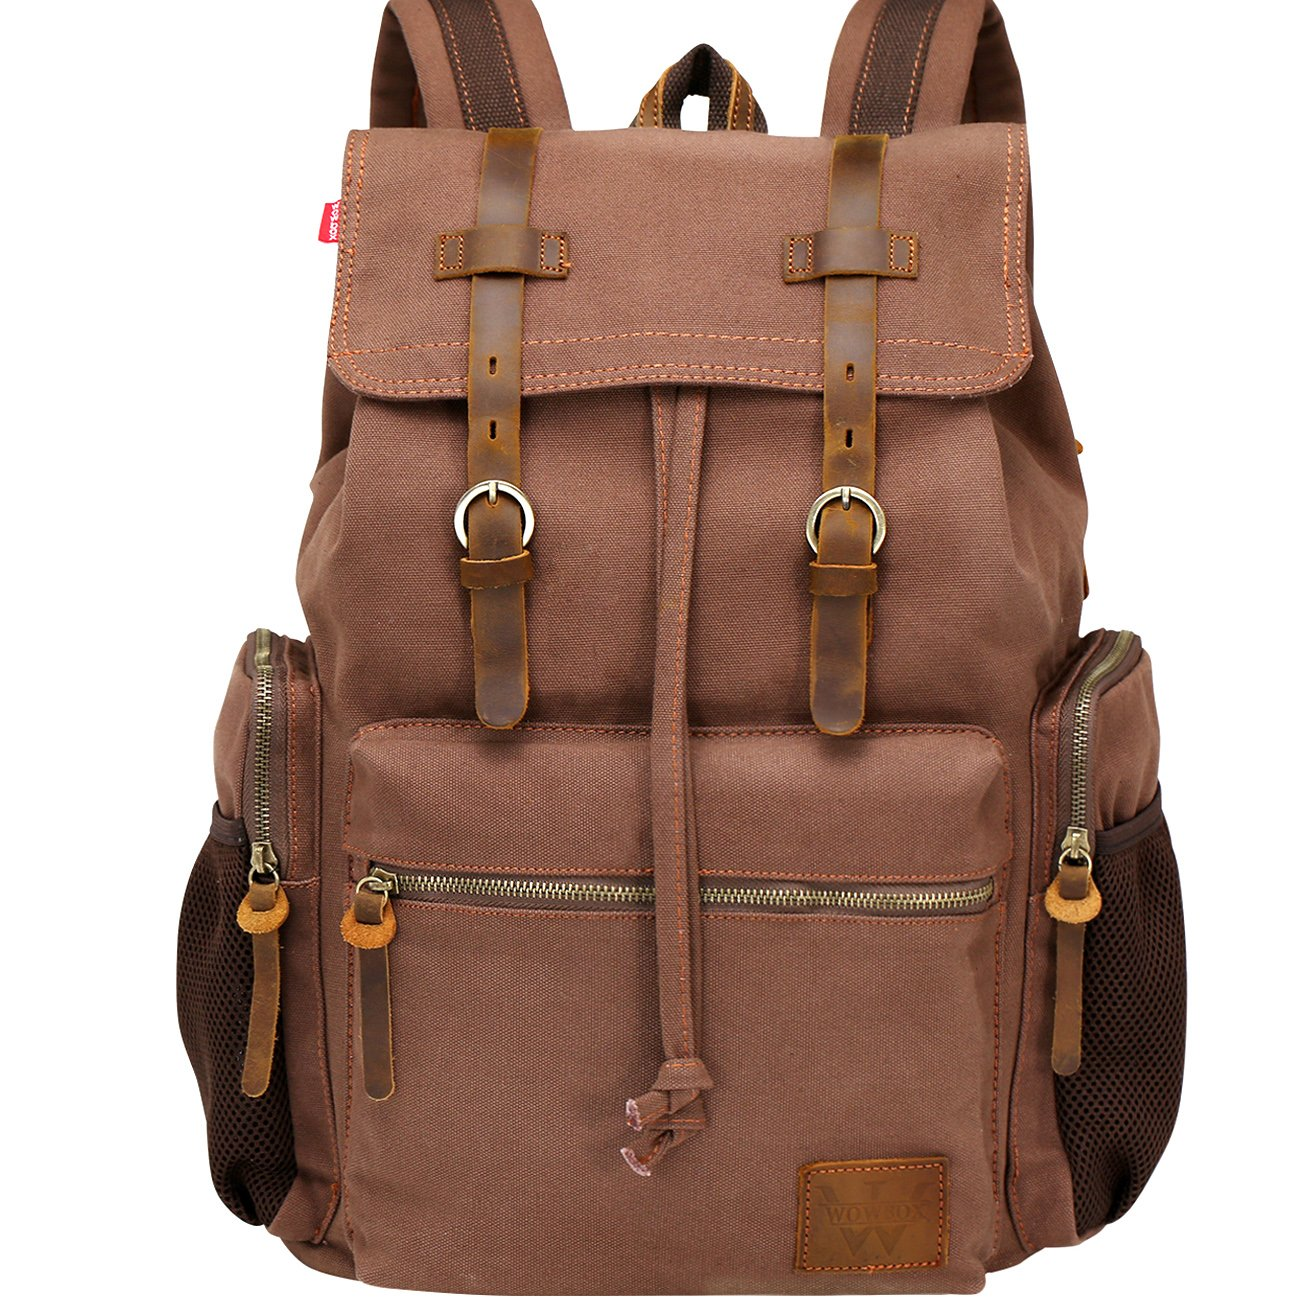 Wowbox 17.3 Inch Laptop Canvas Backpack Unisex Vintage Leather Casual Rucksack School College Bags Satchel Bookbag Large Capacity Hiking Travel Rucksack Business Daypack for Men and Women(Coffee)